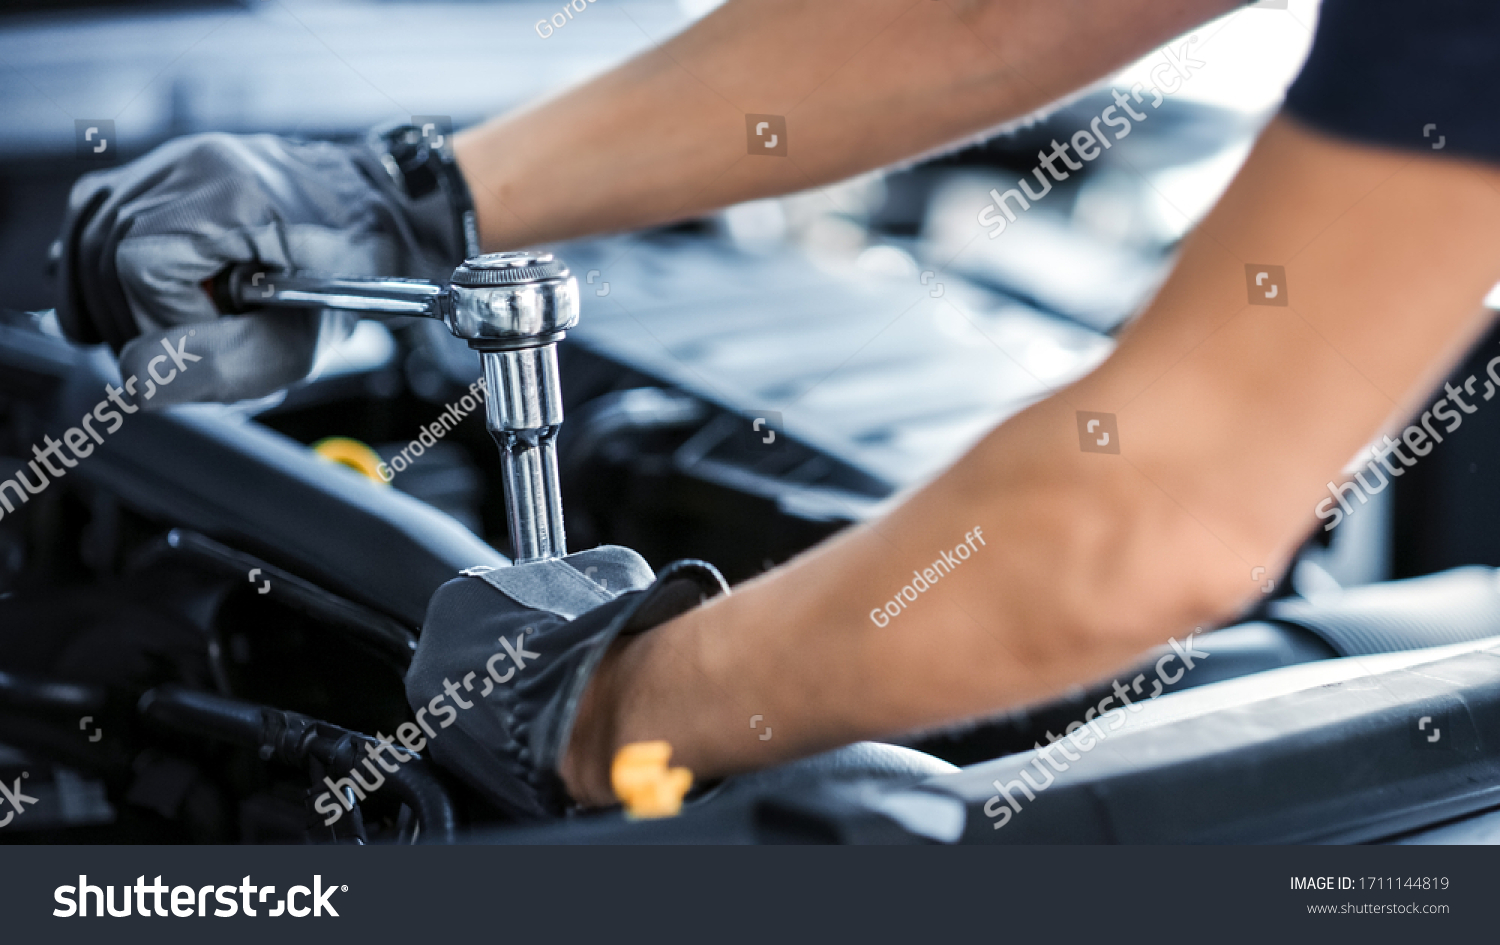 Close Up Shot of a Professional Mechanic Working on Vehicle in Car Service. Engine Specialist Fixing Motor. Repairman is Wearing Gloves and Using a Ratchet. Modern Clean Workshop. #1711144819